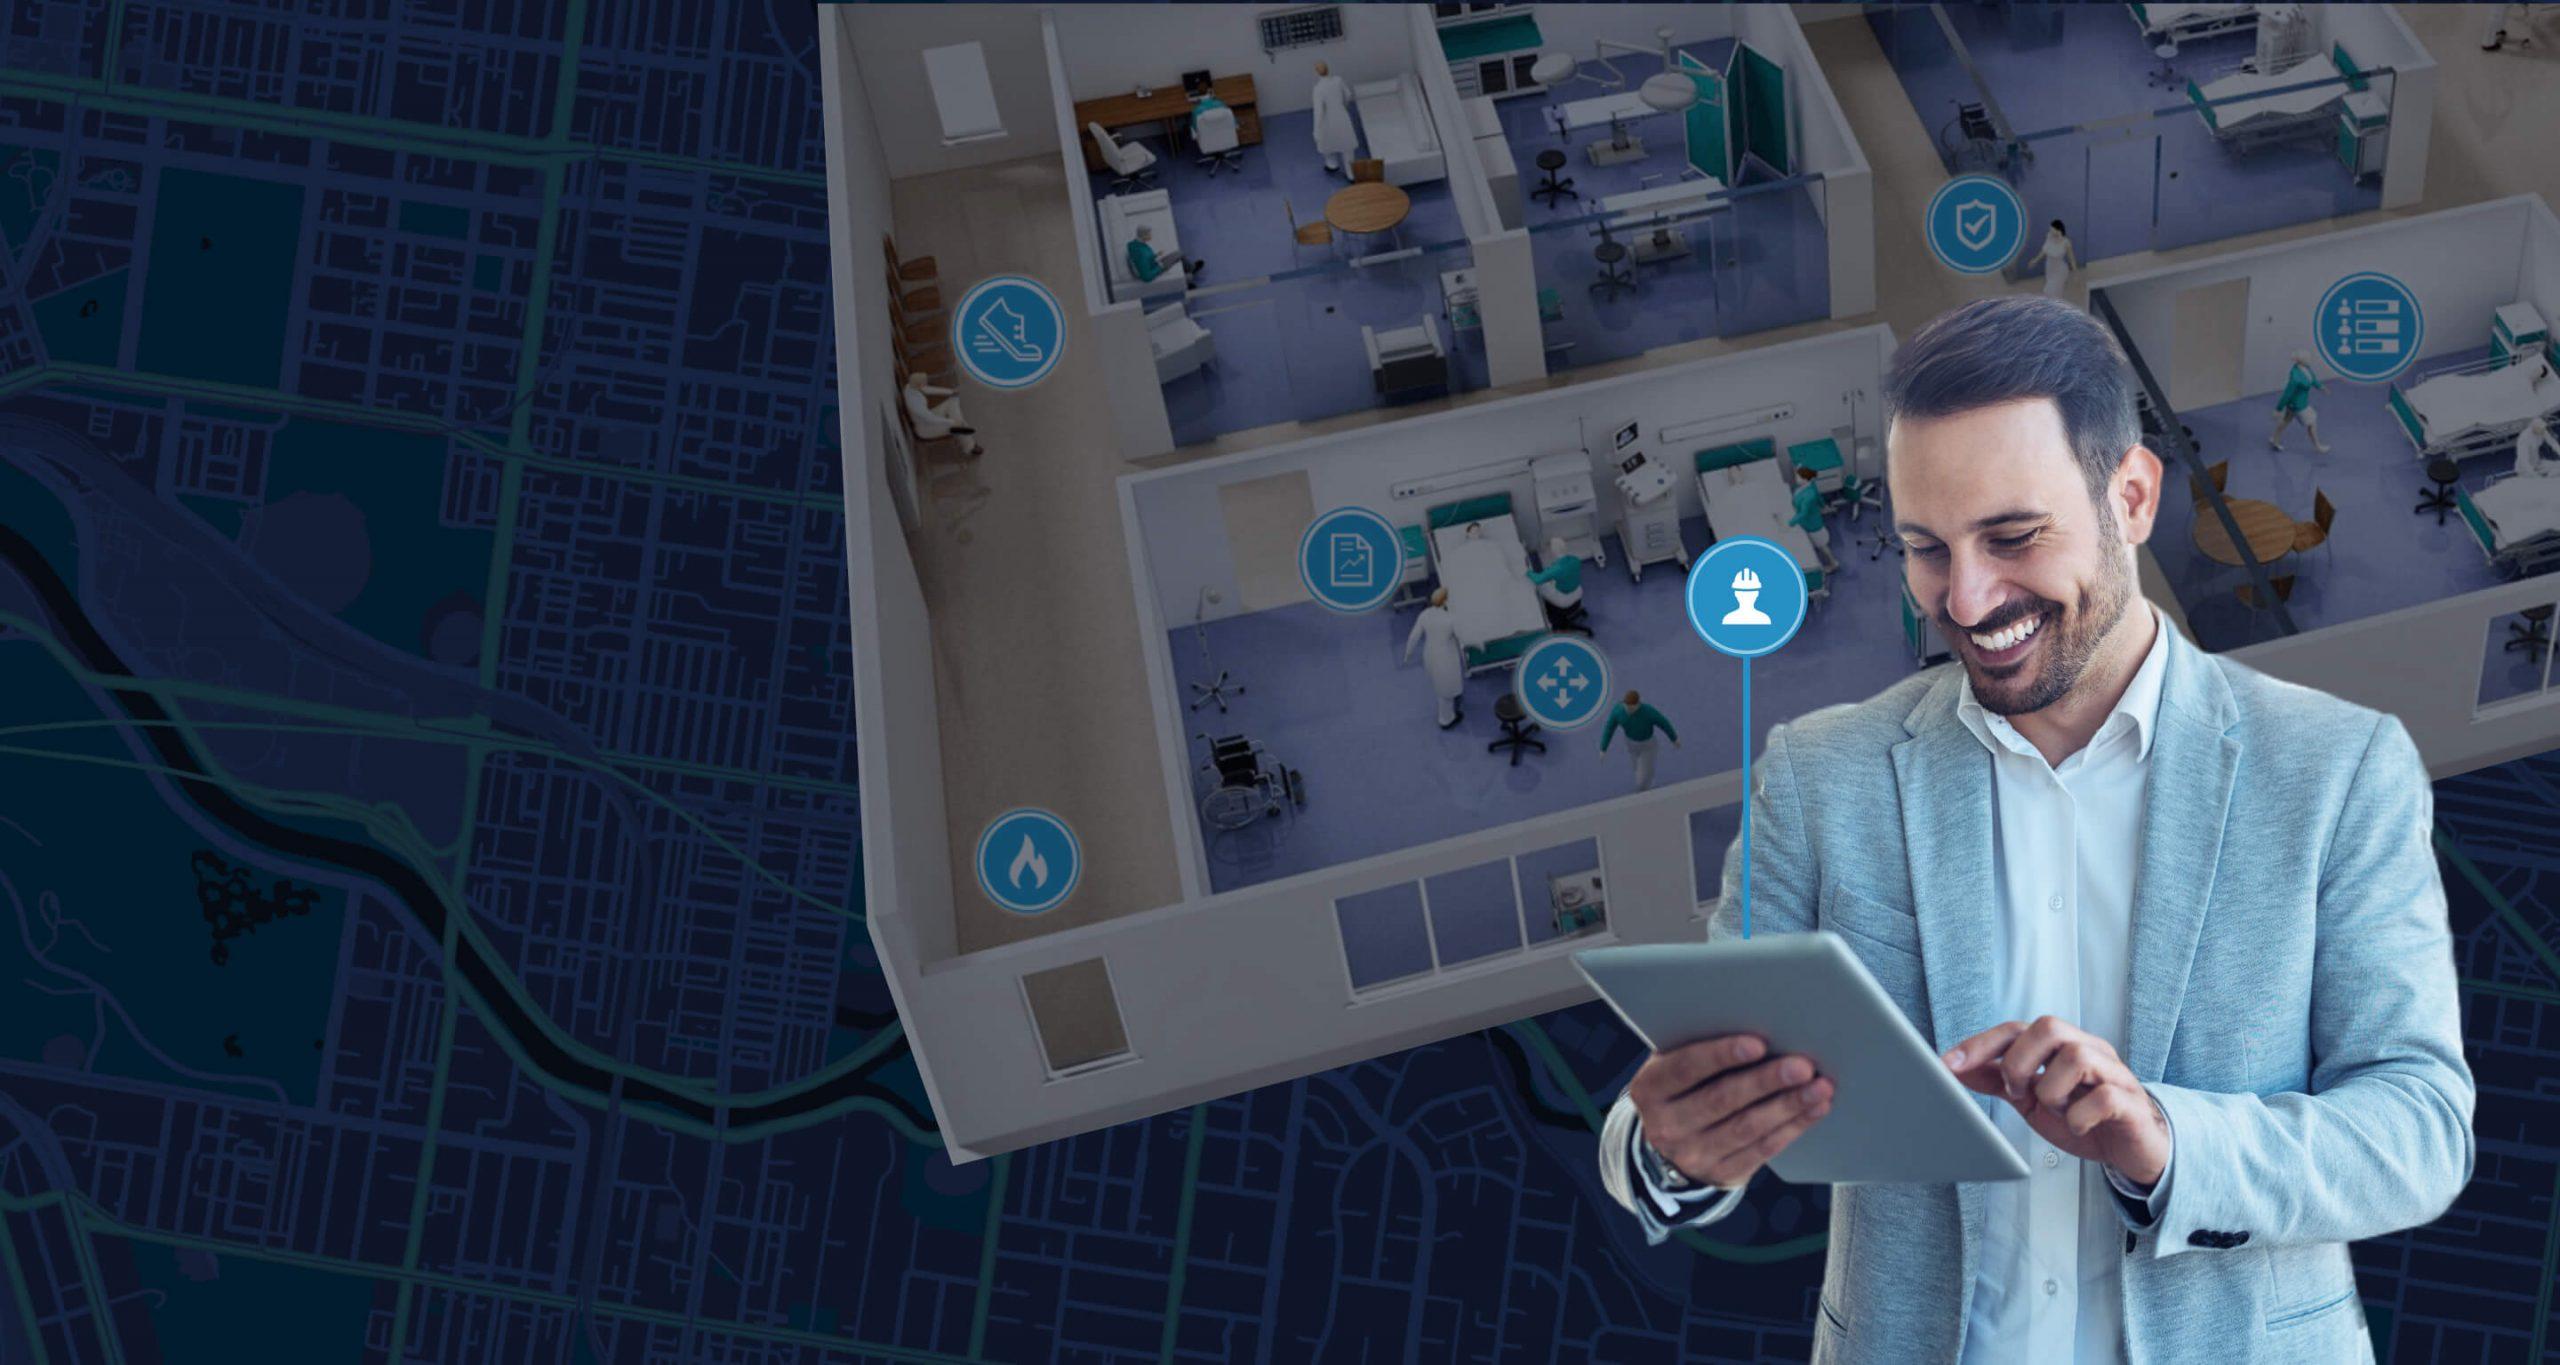 Man tracking assets with indoor map on the background